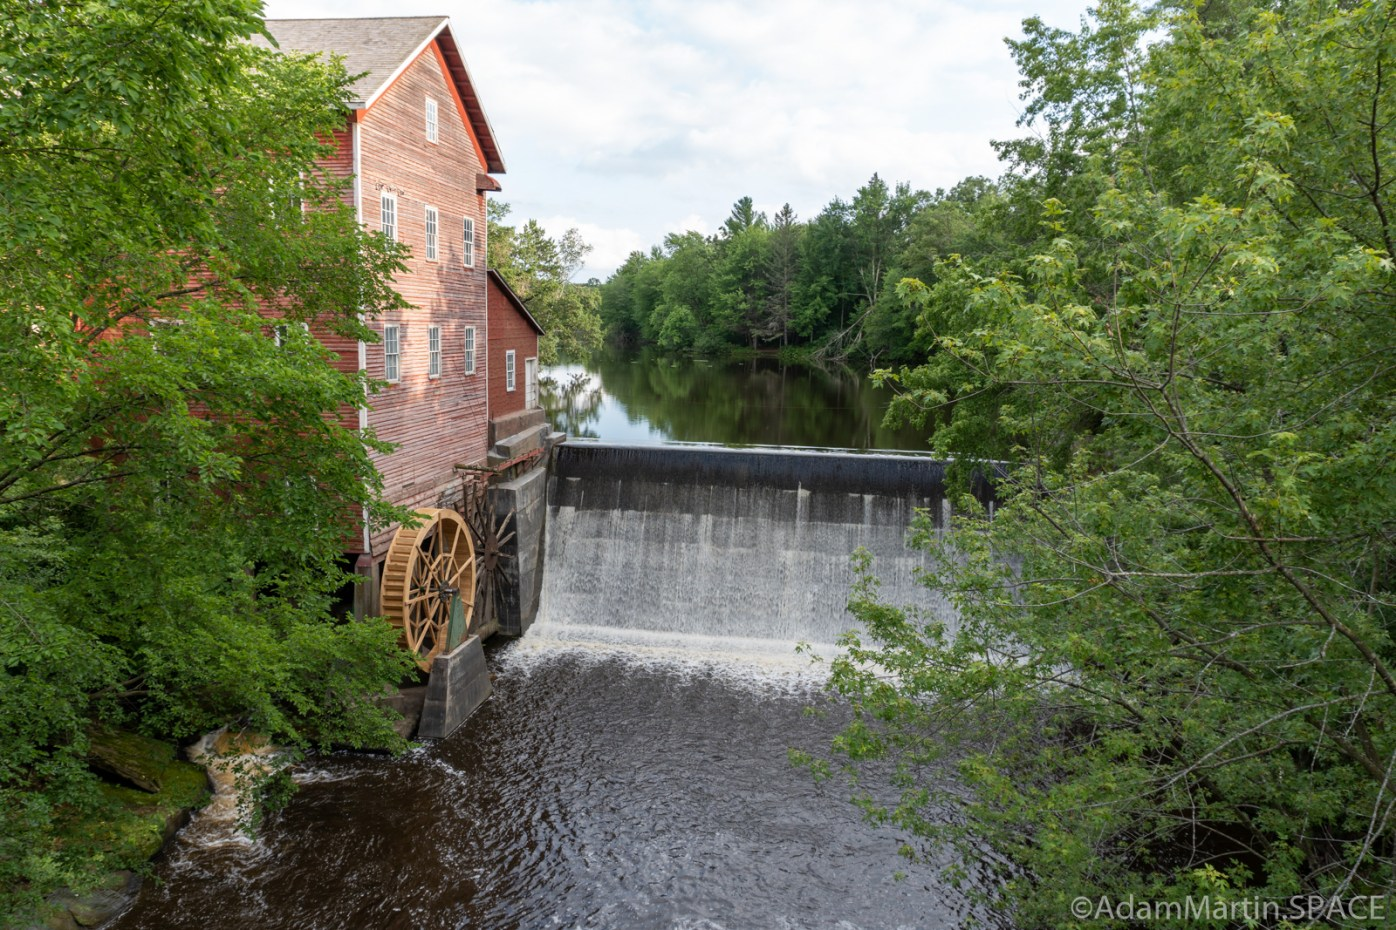 Dells Millpond - Spillway into Bridge Creek